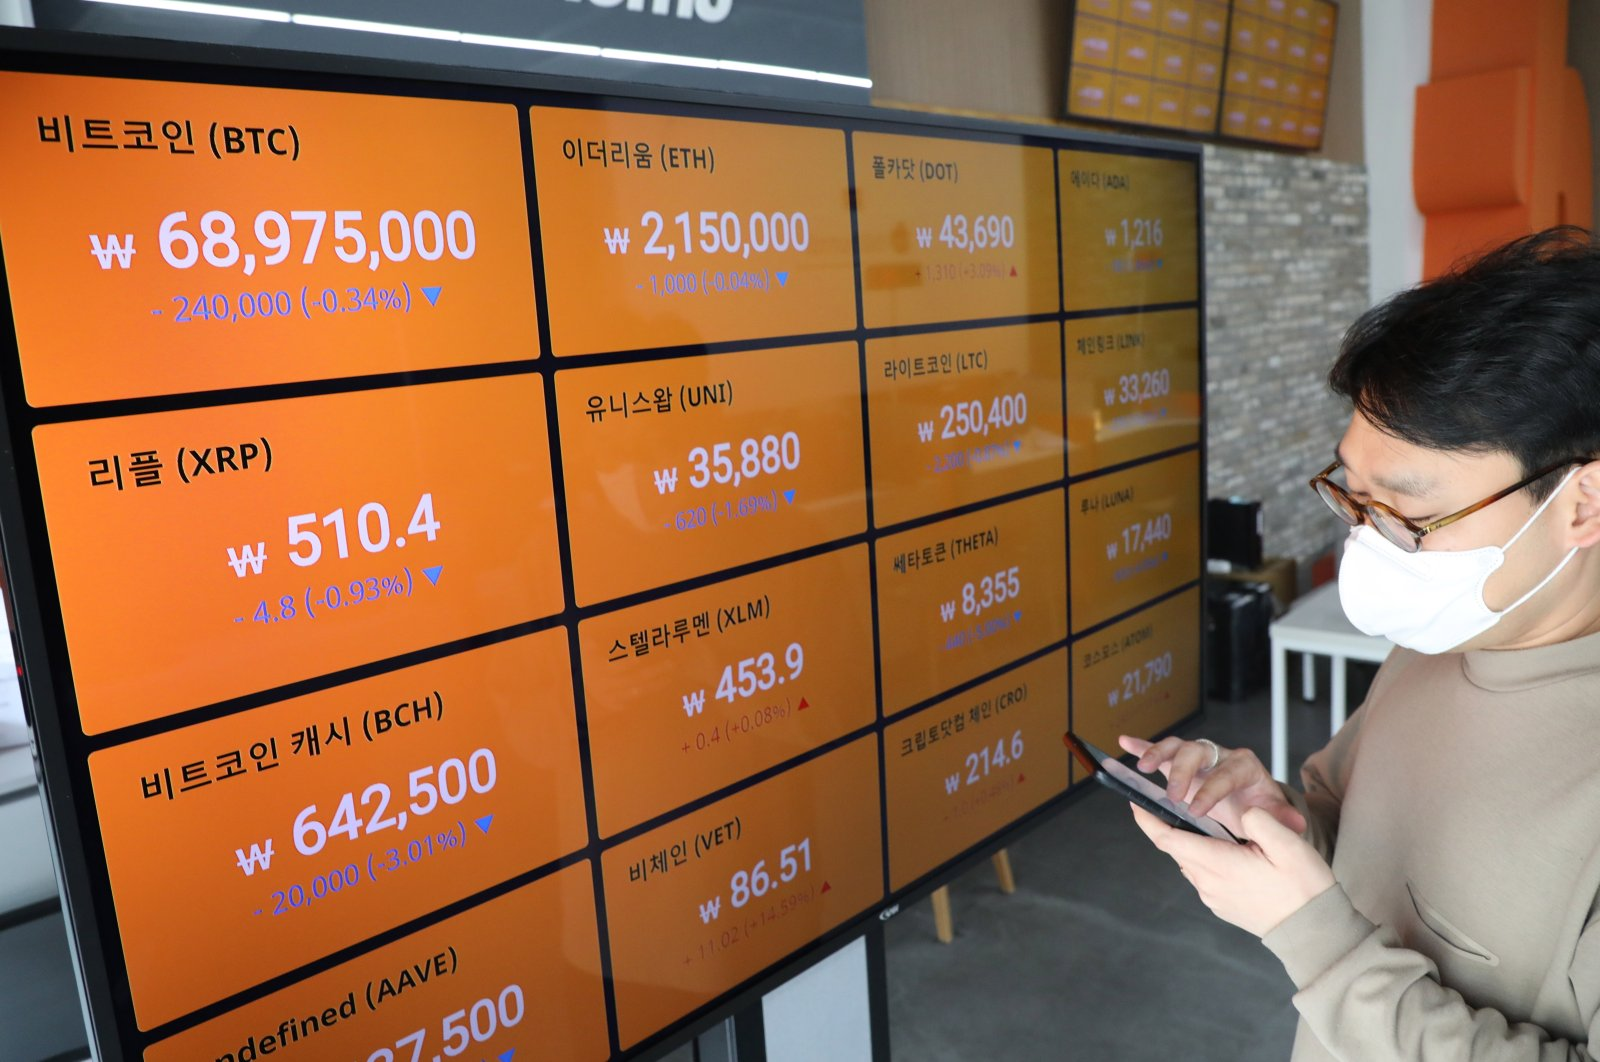 A man looks at an electronic board at a cryptocurrency exchange showing the price of bitcoin shooting to 68,975,030 won ($60,658.72) during a trading session in Seoul, South Korea, March 15, 2021. (EPA Photo)